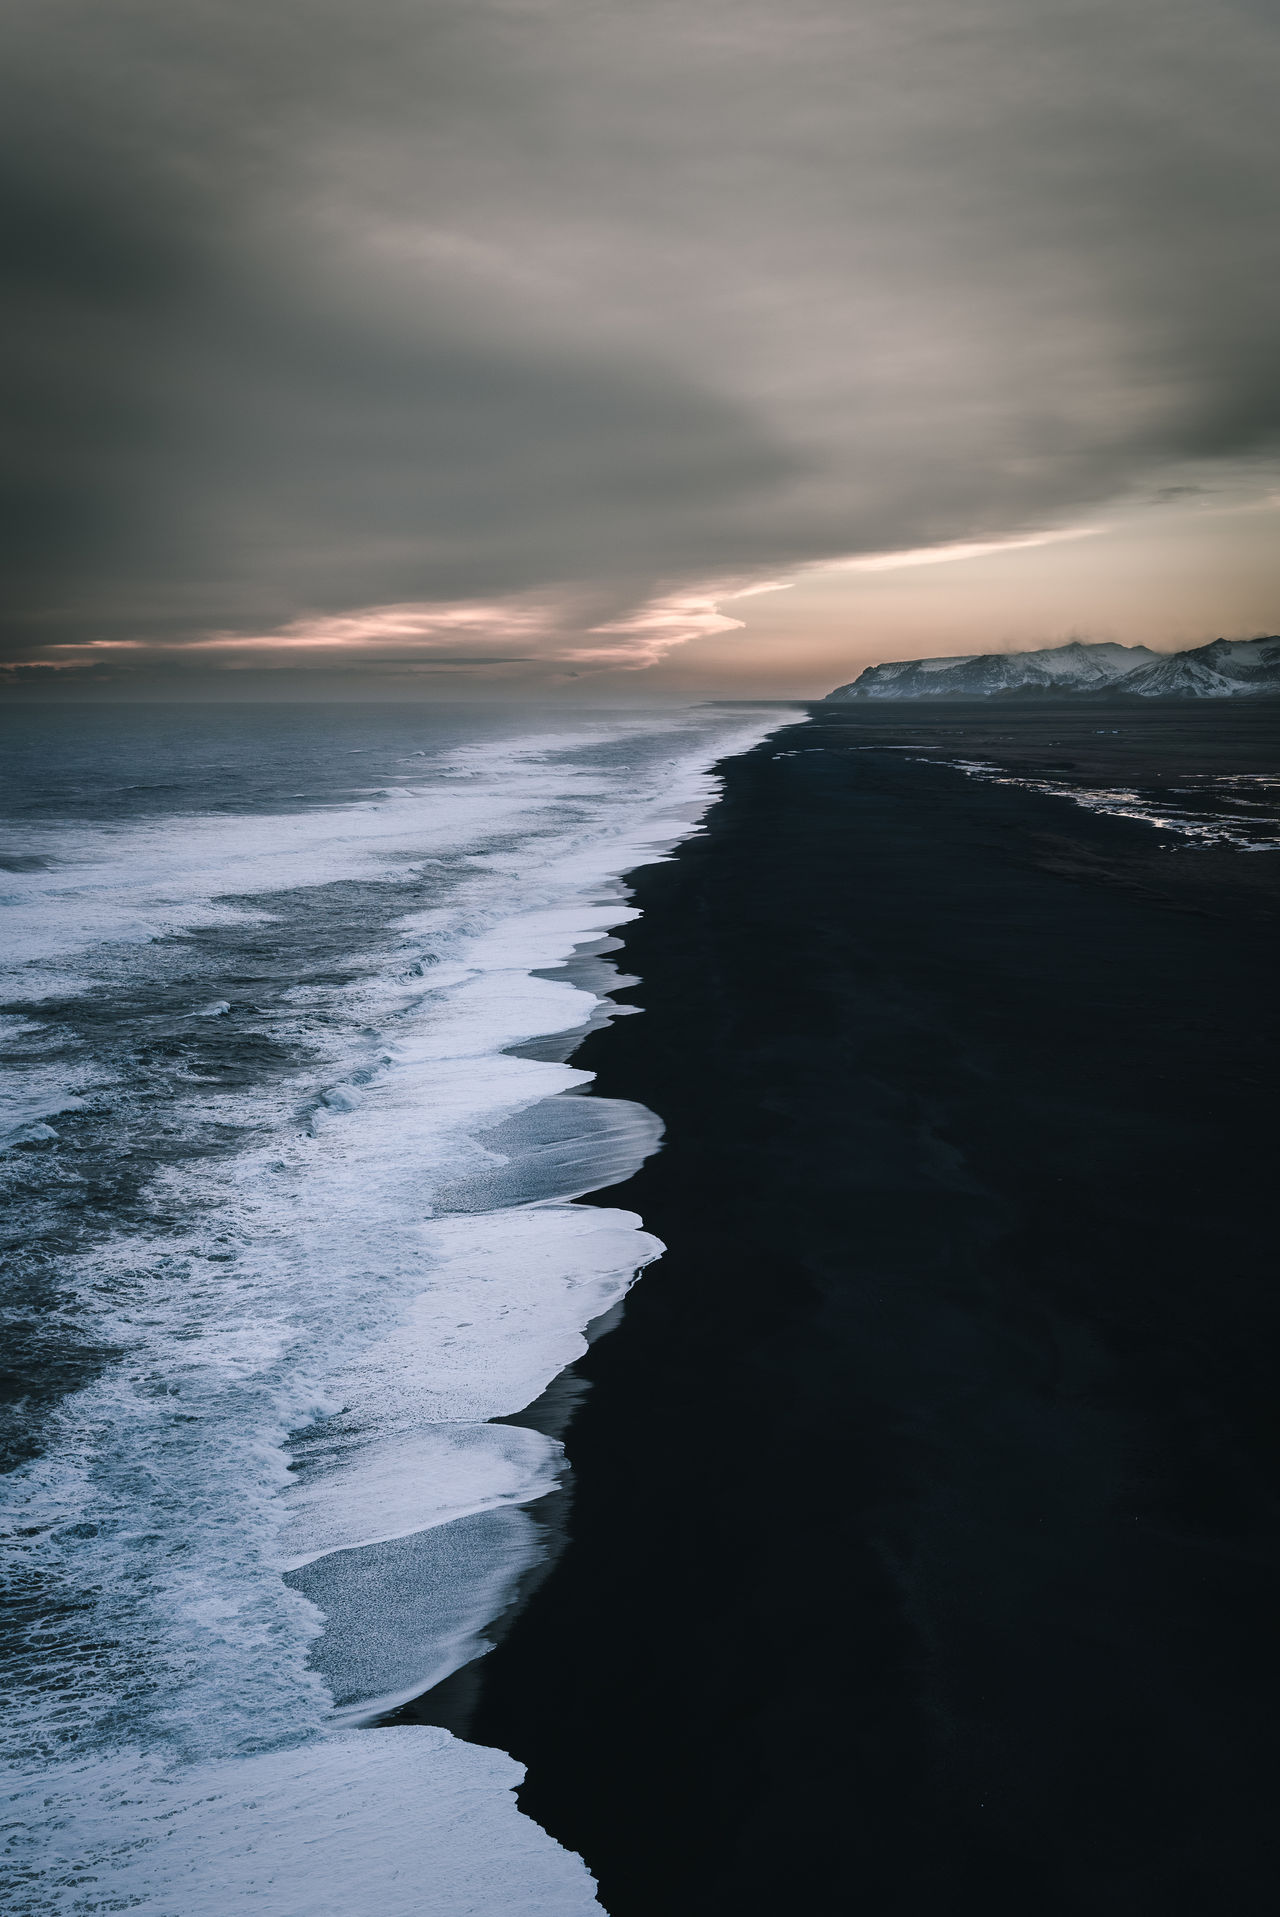 Beach Beautiful Beauty In Nature Check This Out EyeEm Best Shots Iceland Iceland_collection Landscape Landscape_Collection Landscape_photography Moody Moody Sky Natural Beauty Nature Nature_collection Ocean Outdoors Sea Sky Sunset Travel Destinations Vanishing Point Water Wave Wonderful